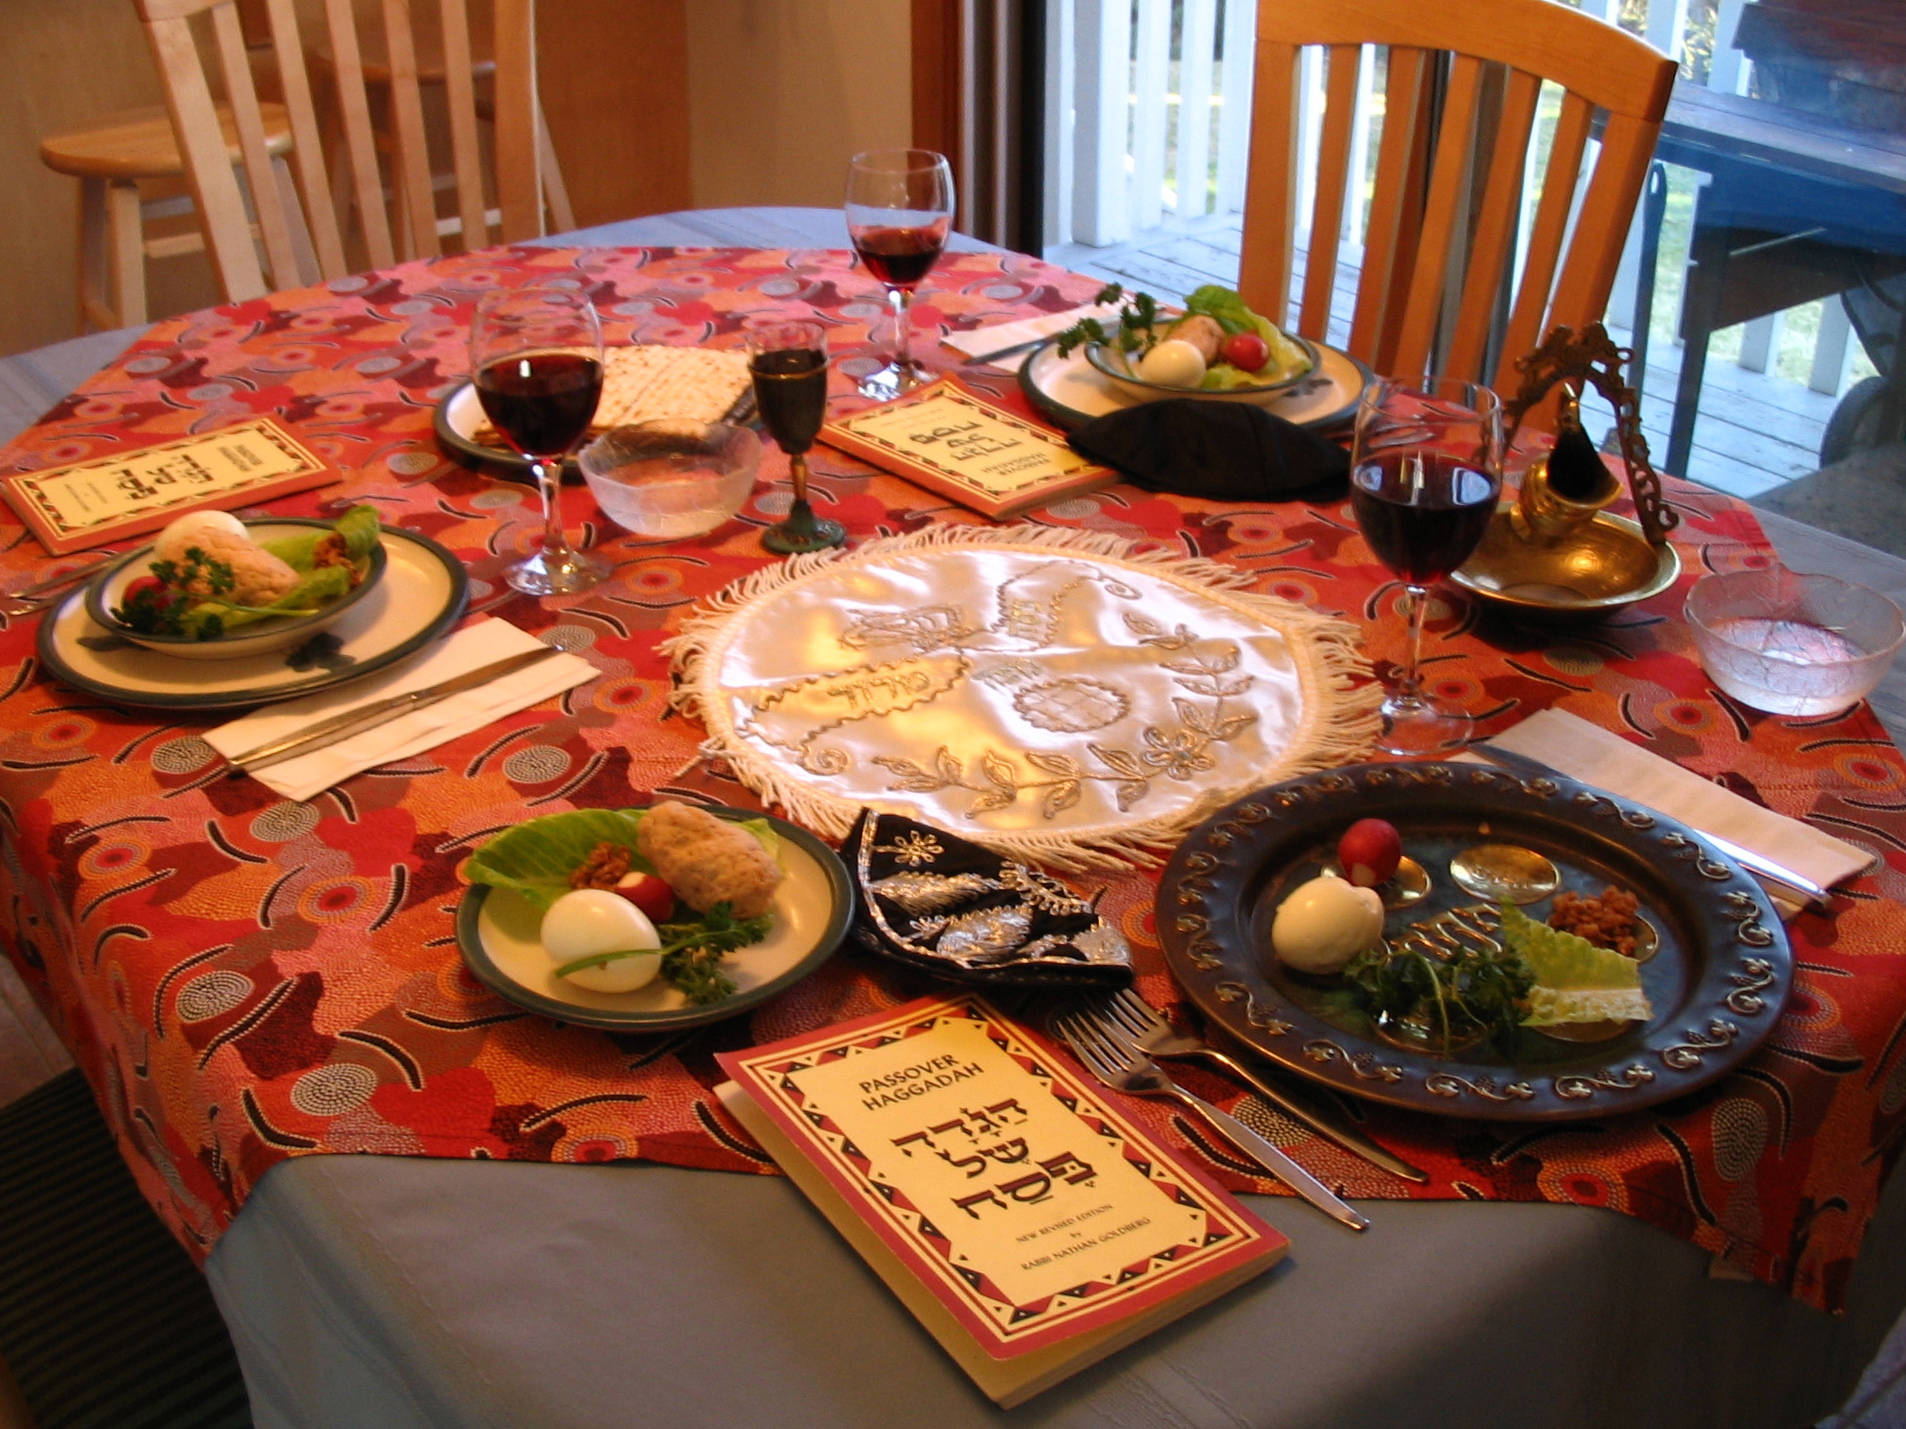 The Jewish observance of Passover is often held around the same time as Easter. What is the name of the Passover feast? (Wikimedia commons)